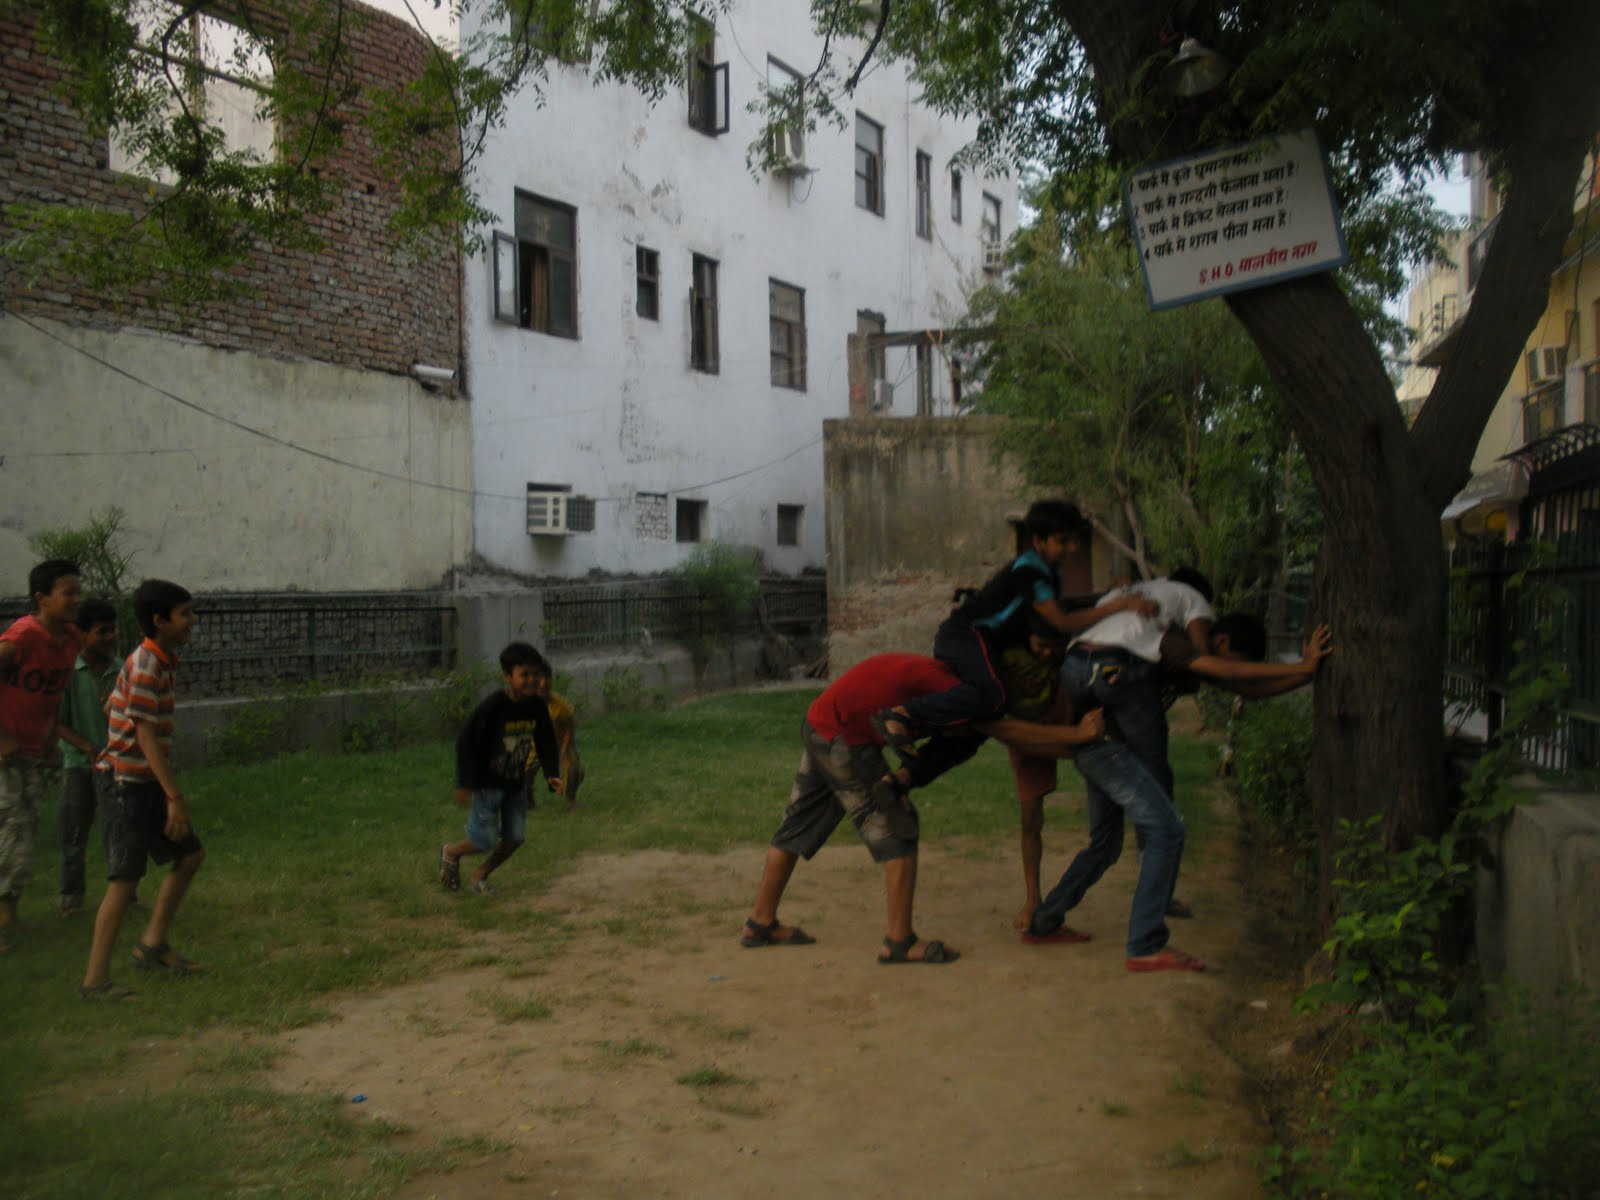 Ghoda-Ghodi being played in the triangular park, not a regular phenomenon. Some of the hip-hoppers practice here on the cement square